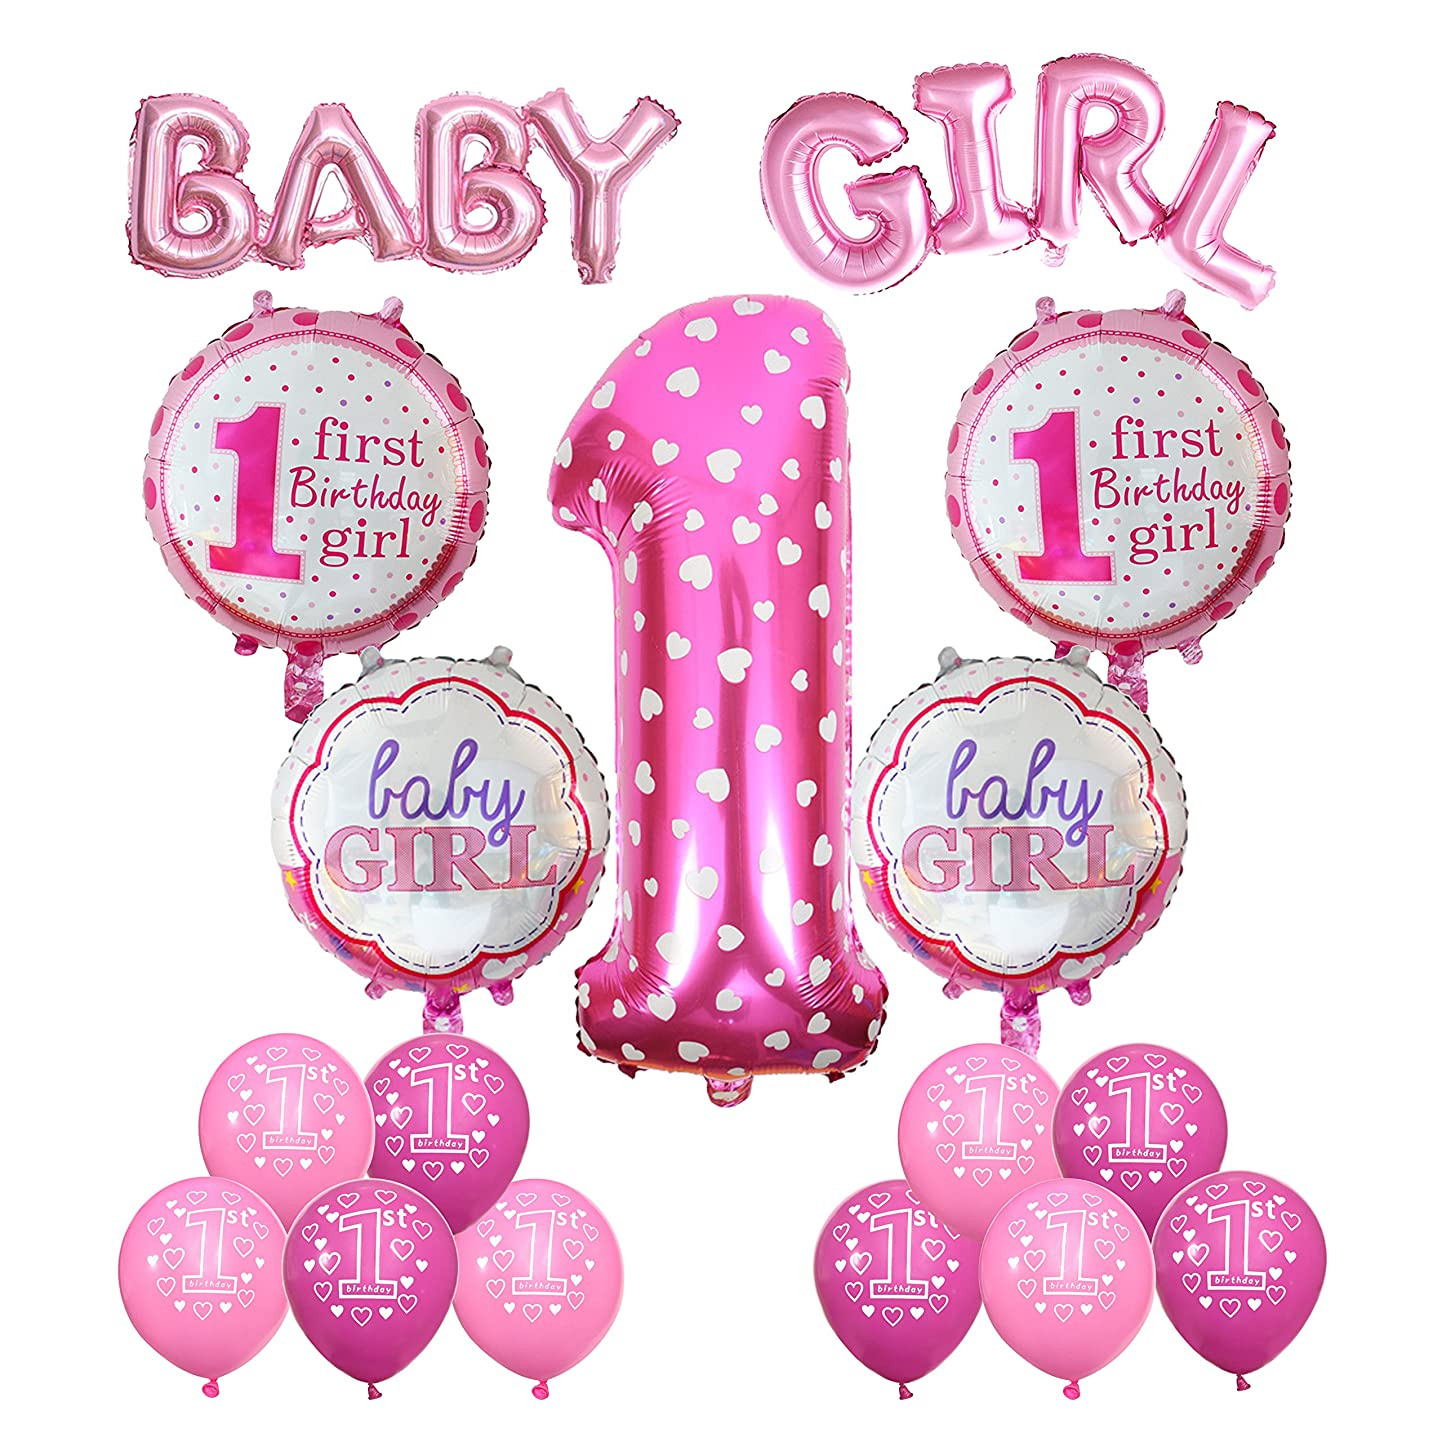 Cocodeko 1st Birthday Decoration, Inflatable Helium Foil Balloons Baby Girls Birthday Party Air Balloons Set Supplies for Baby Shower Photo Props Pink Number First Birthday Decorations - Girl ptzbhuvsatj0